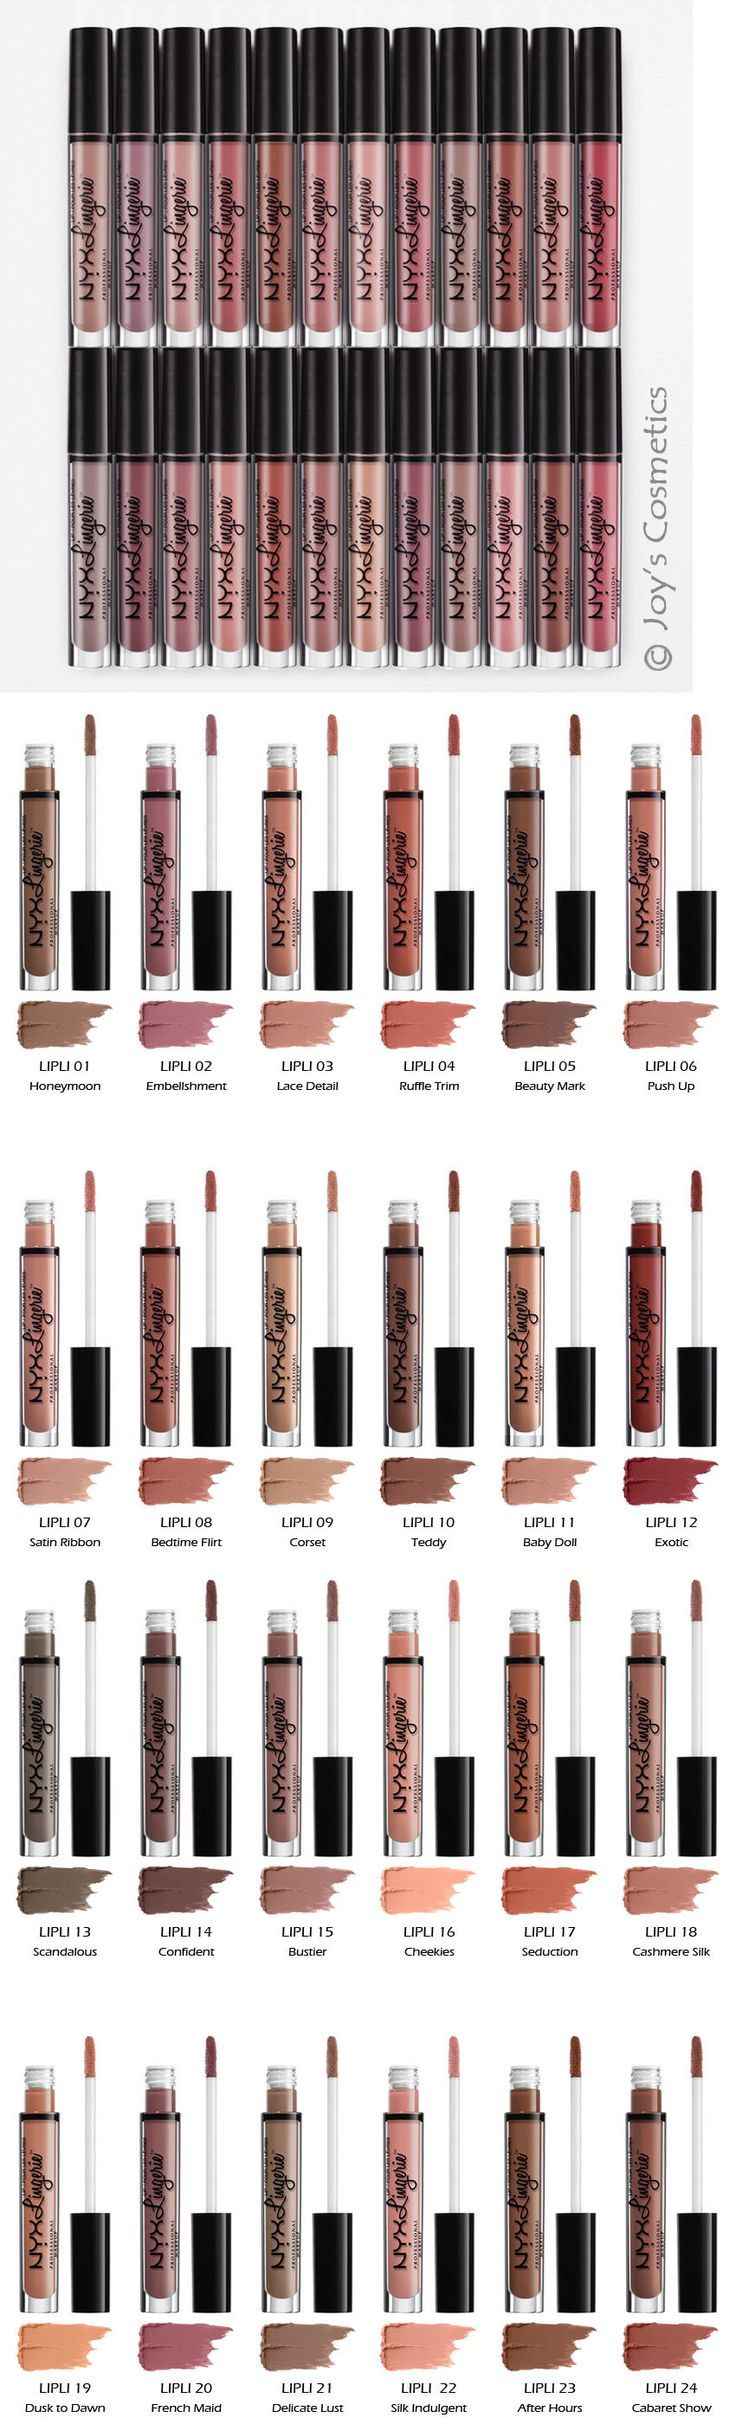 Beauty Makeup: 24 Nyx Lip Lingerie Liquid Lipstick - Matte Finish Full Set *Joys Cosmetics* -> BUY IT NOW ONLY: $120.99 on eBay!